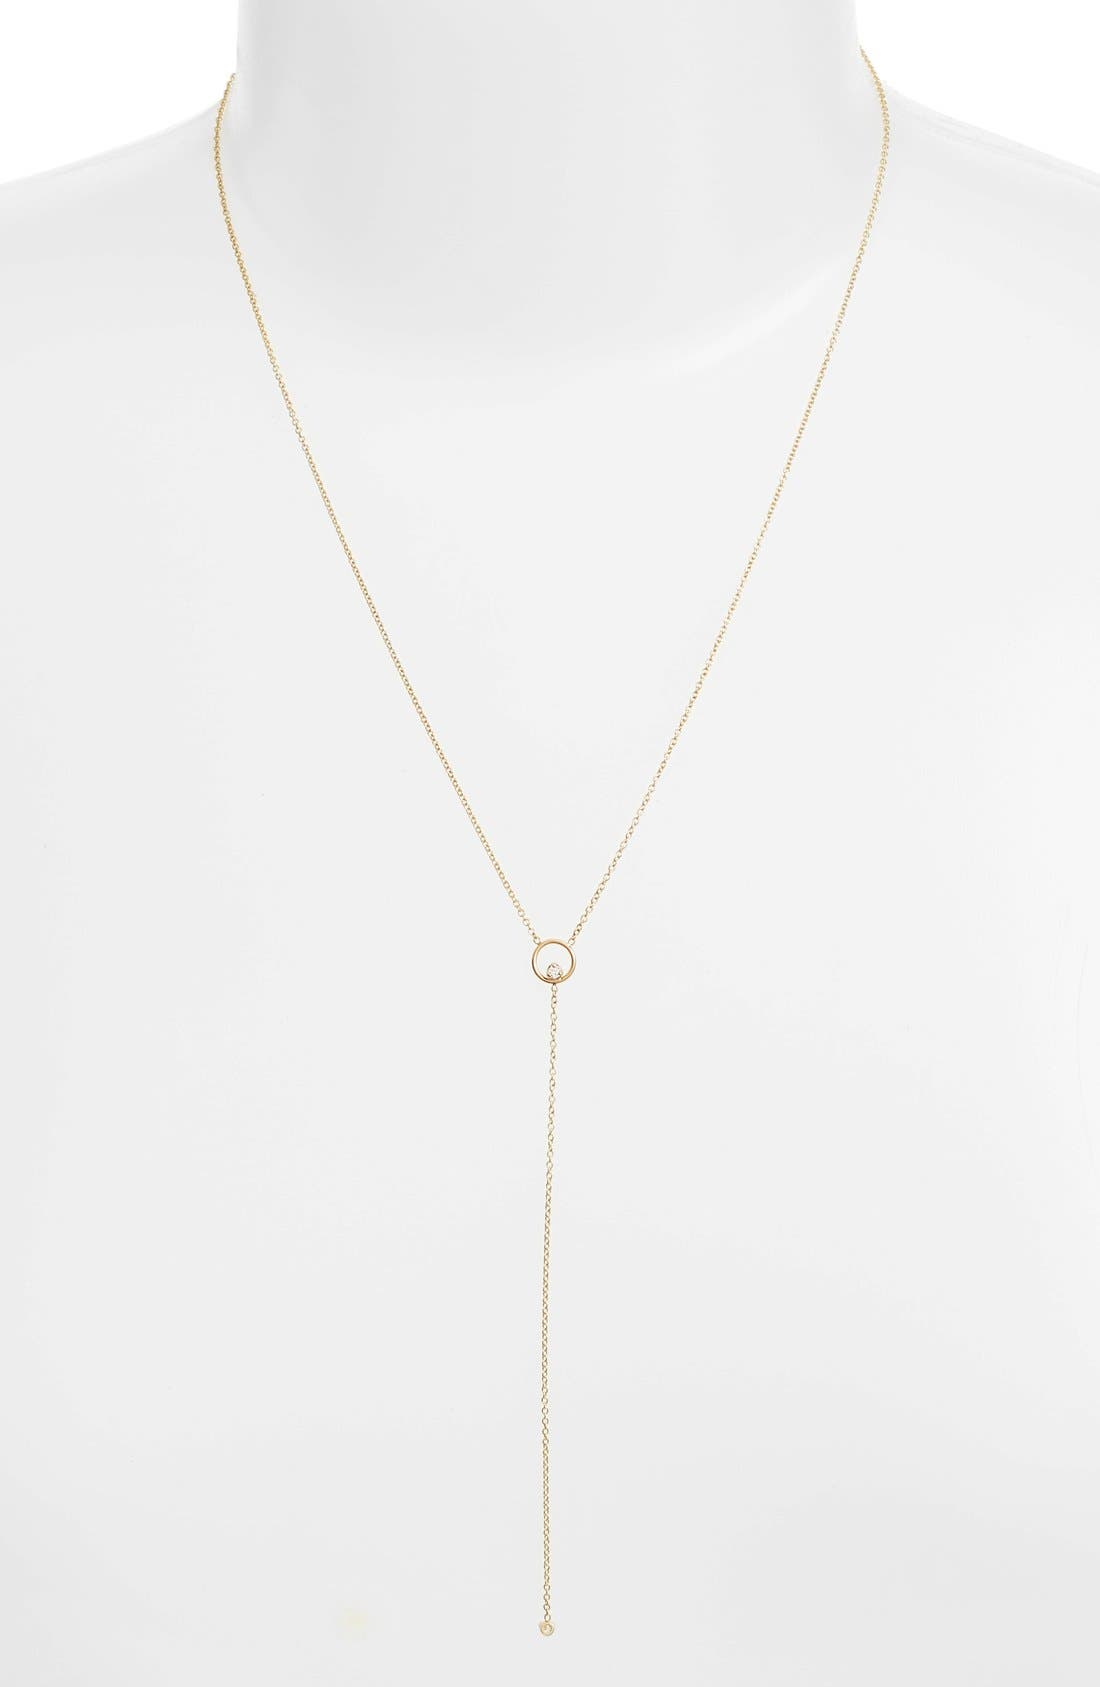 Diamond Circle Y-Necklace,                             Alternate thumbnail 3, color,                             YELLOW GOLD